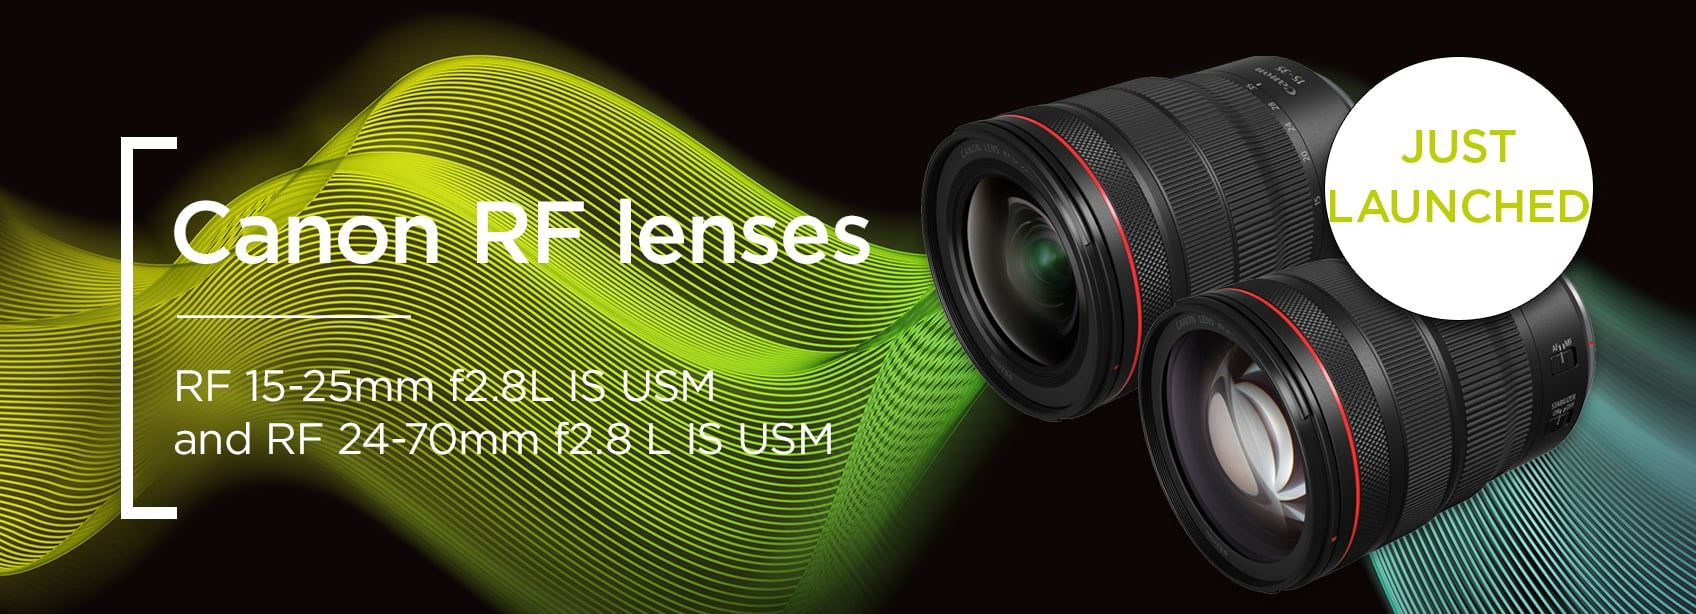 Canon RF Lenses 15-35mm f2.8 L and 24-70mm f2.8 L - Just launched